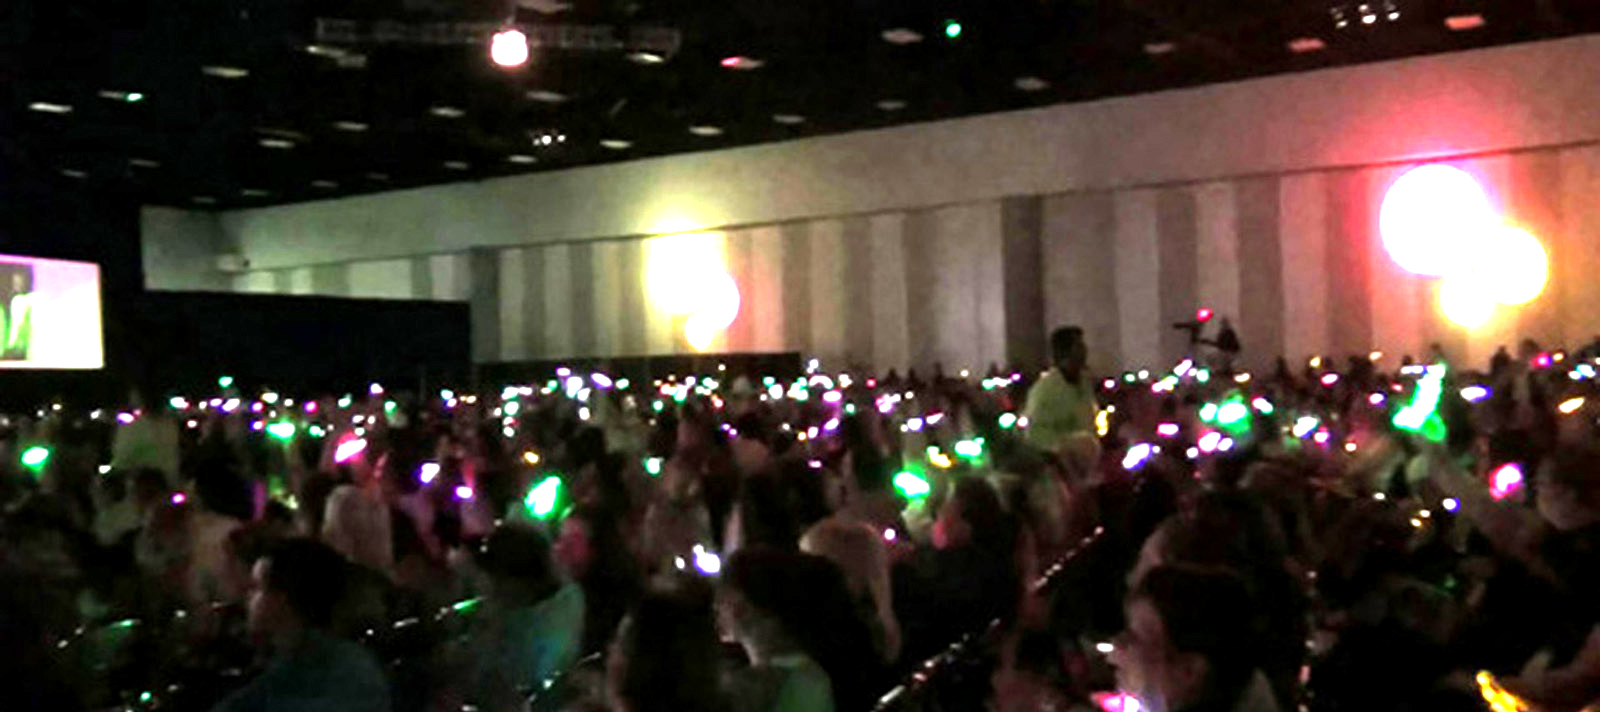 XyloBands TLC Creative corporate event